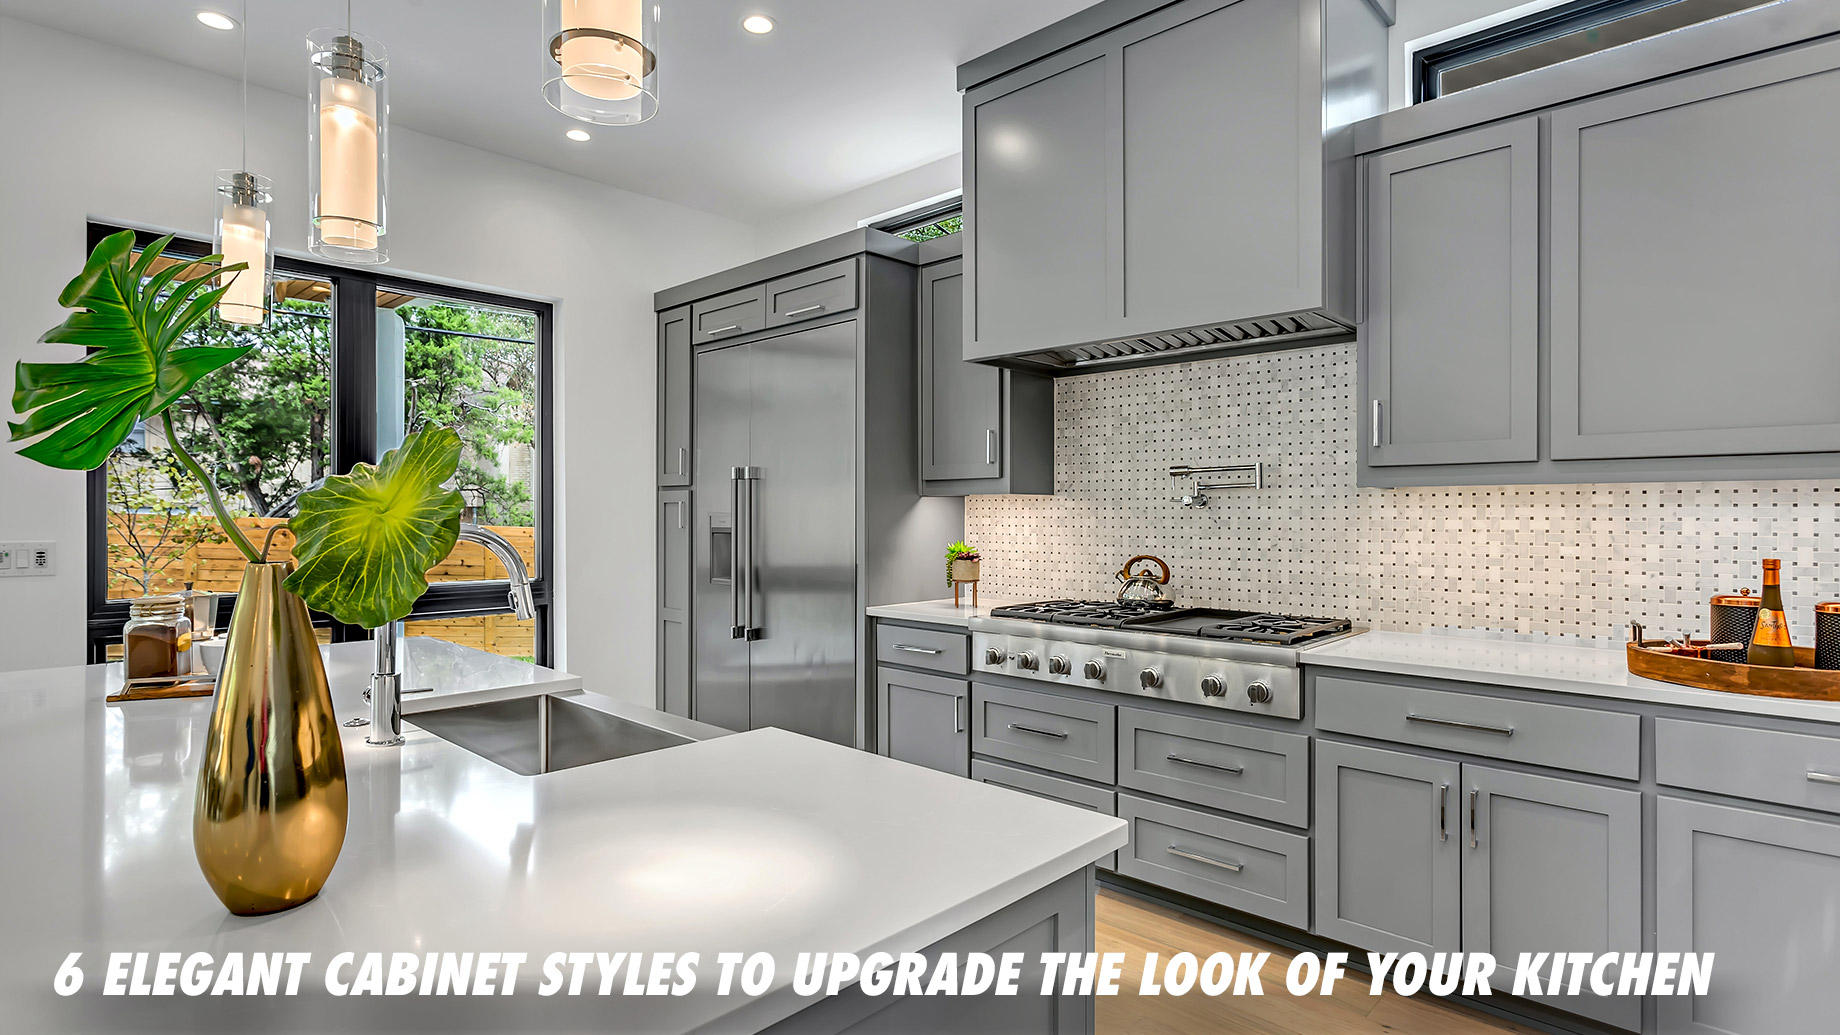 6 Elegant Cabinet Styles to Upgrade the Look of Your Kitchen